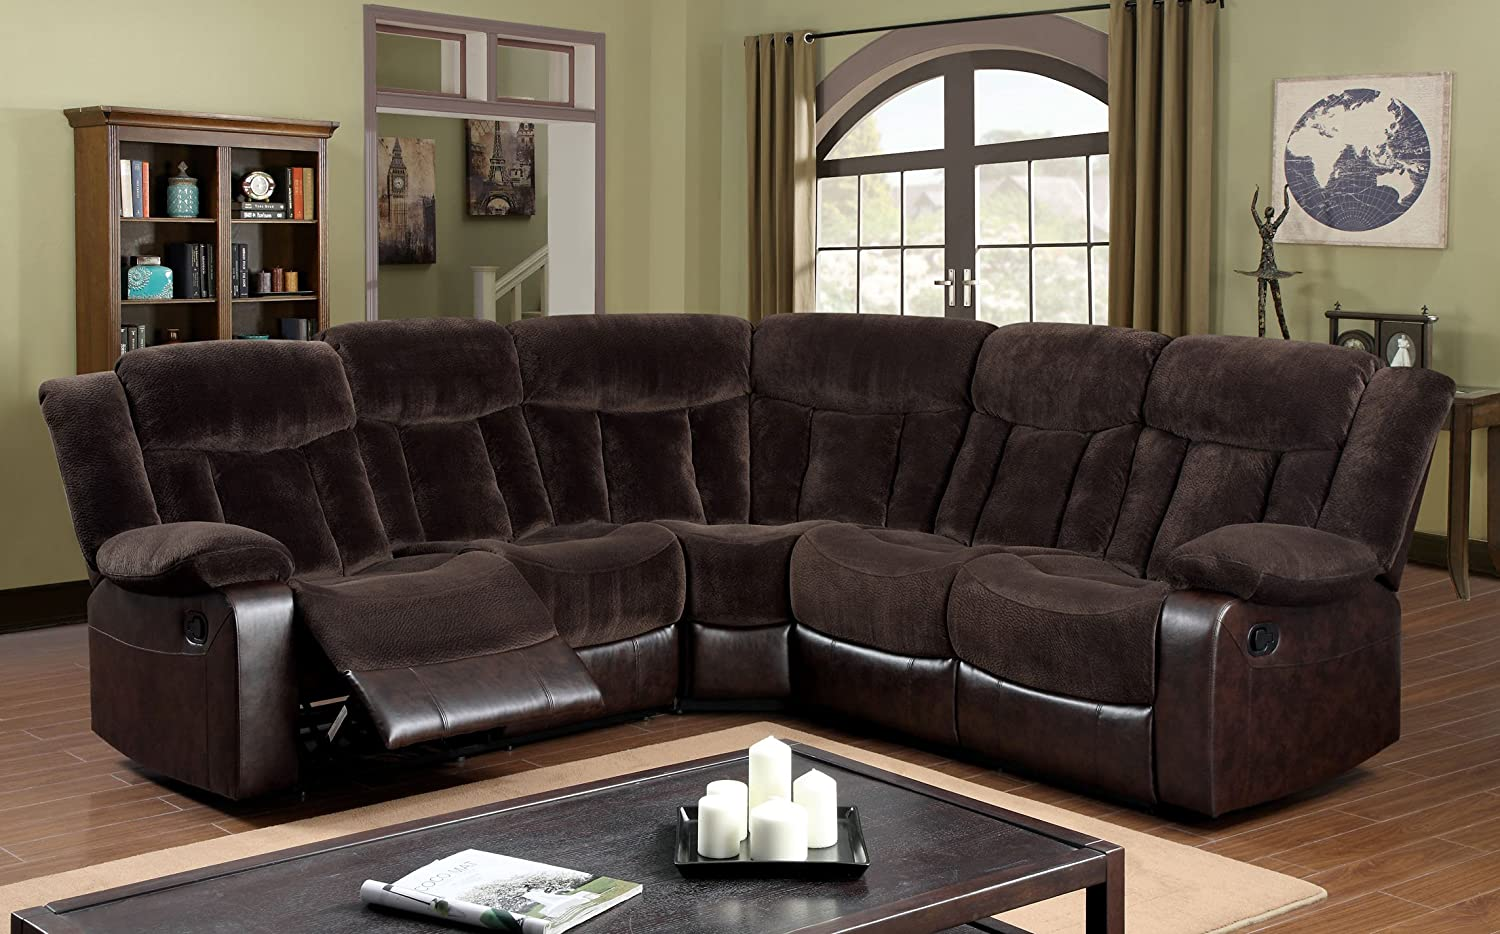 Furniture of America Patton Sectional 2-Recliner Sofa